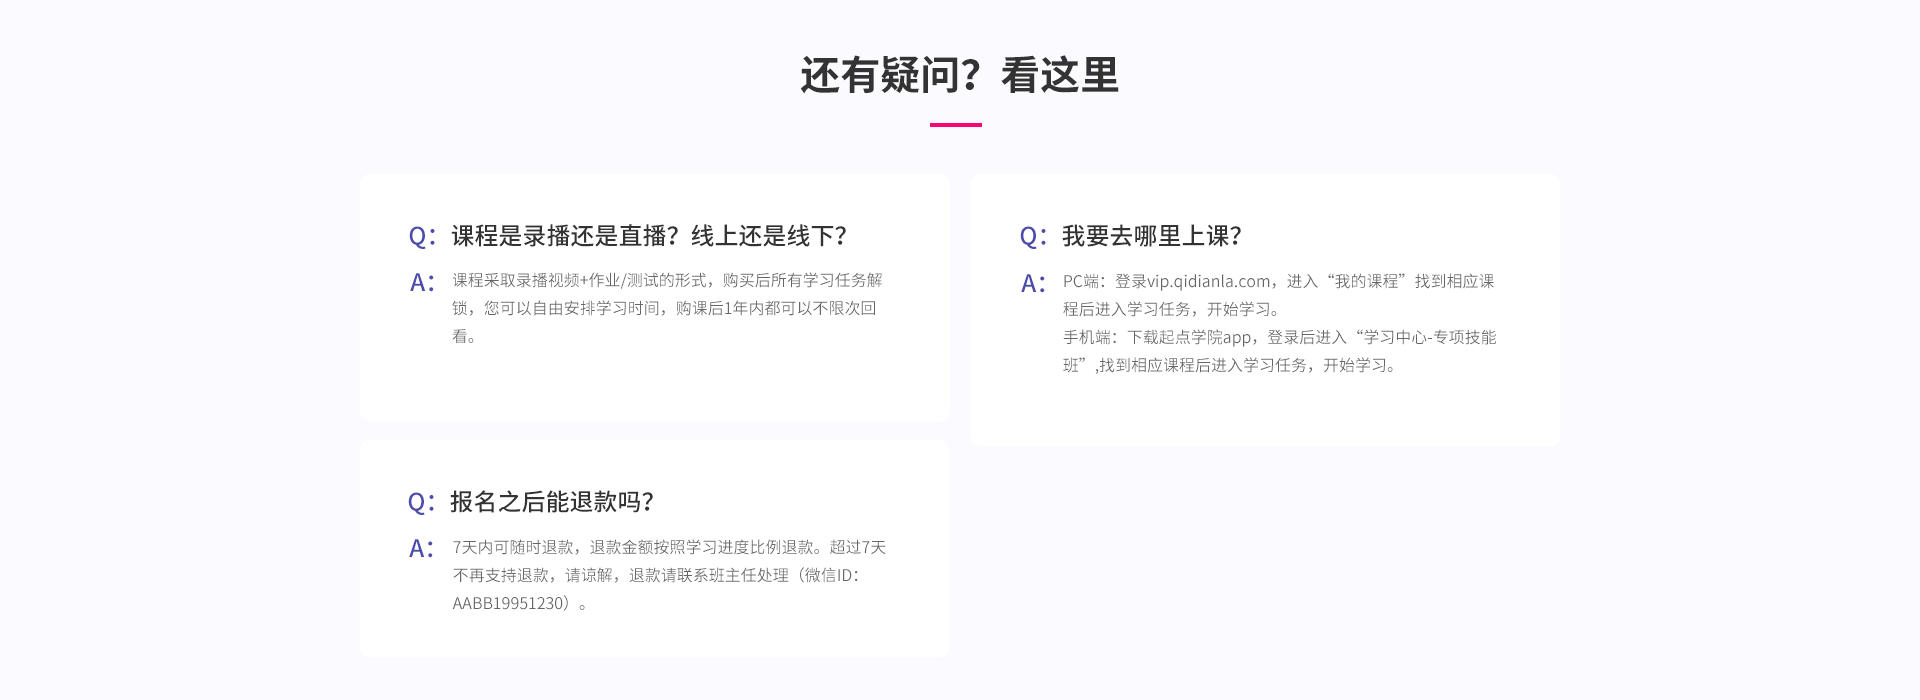 axure课程web_08.png